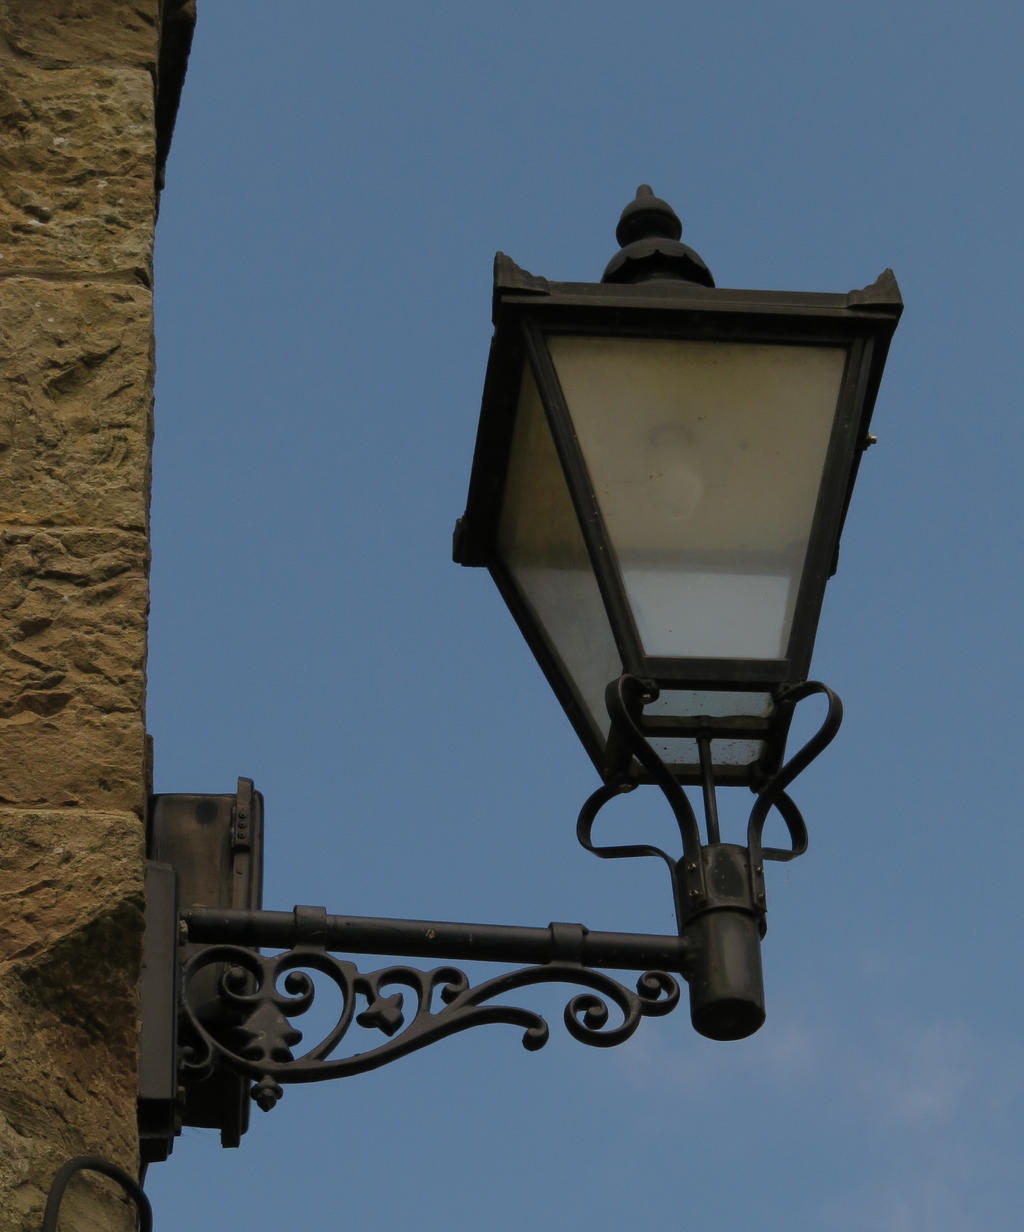 Old Street Lamp2 - Stock by supersnappz16